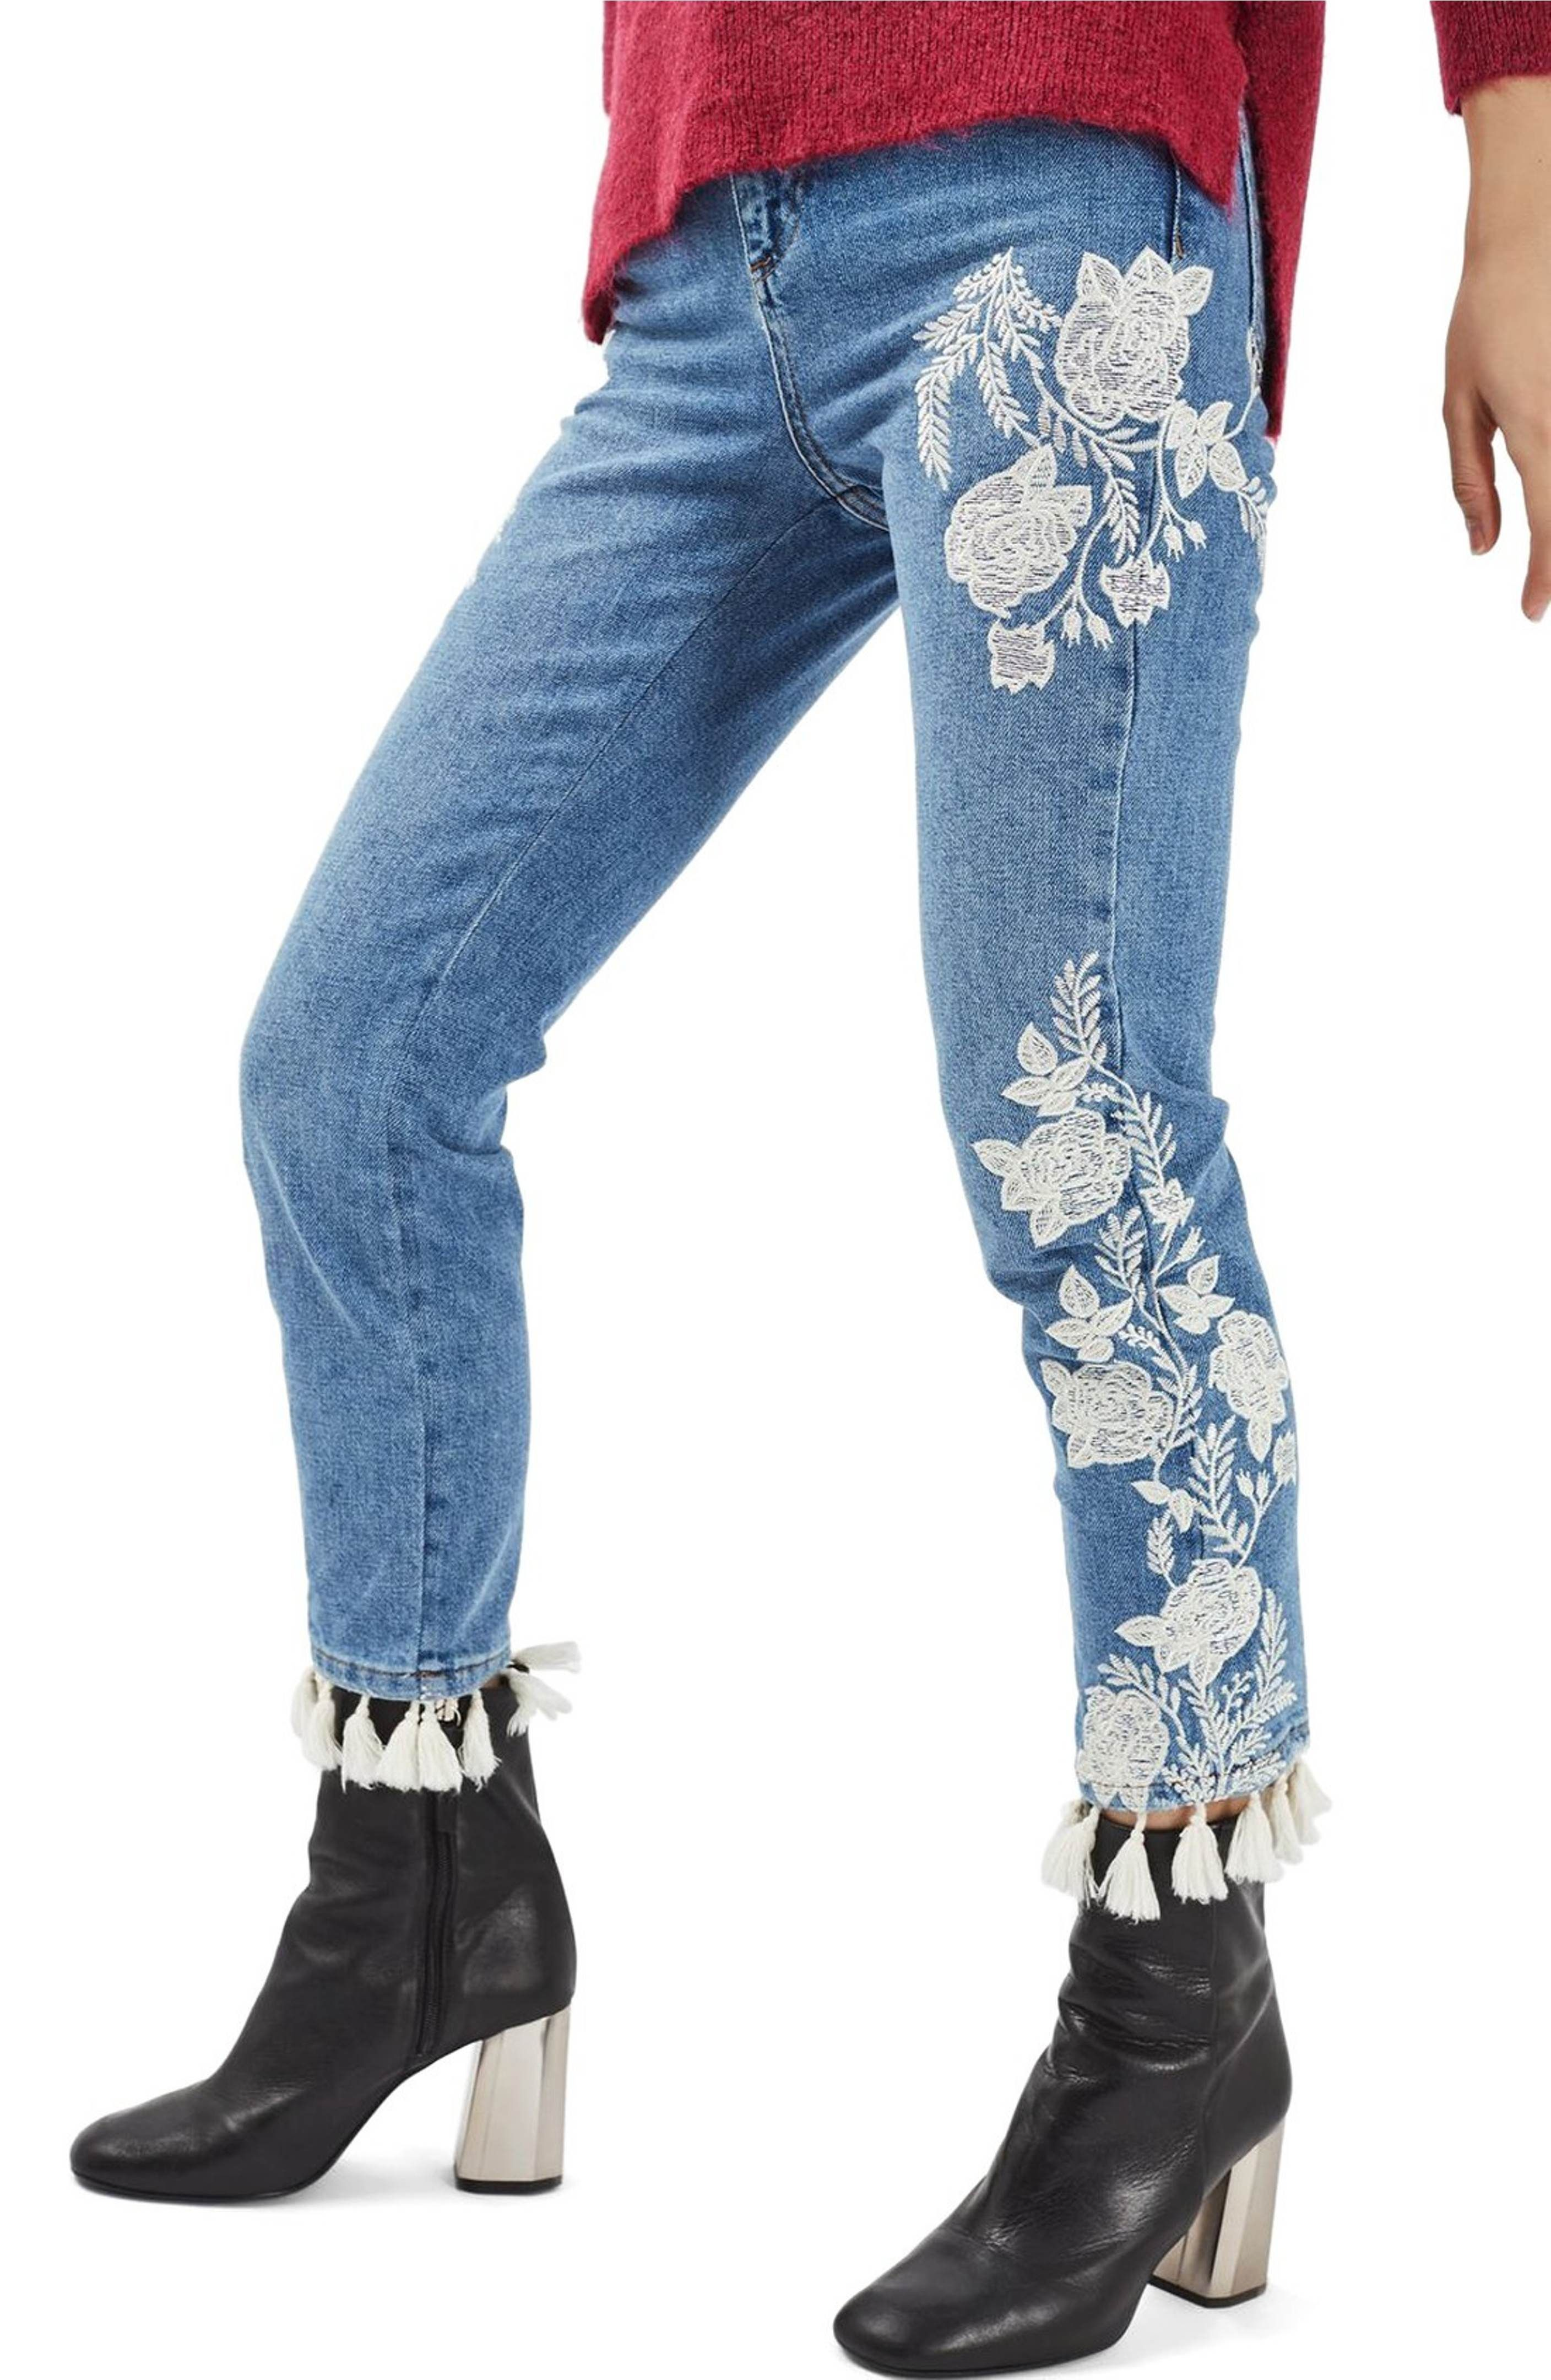 Alice + Olivia dupe - Main Image - Topshop Moto Floral Embroidered Straight  Leg Jeans